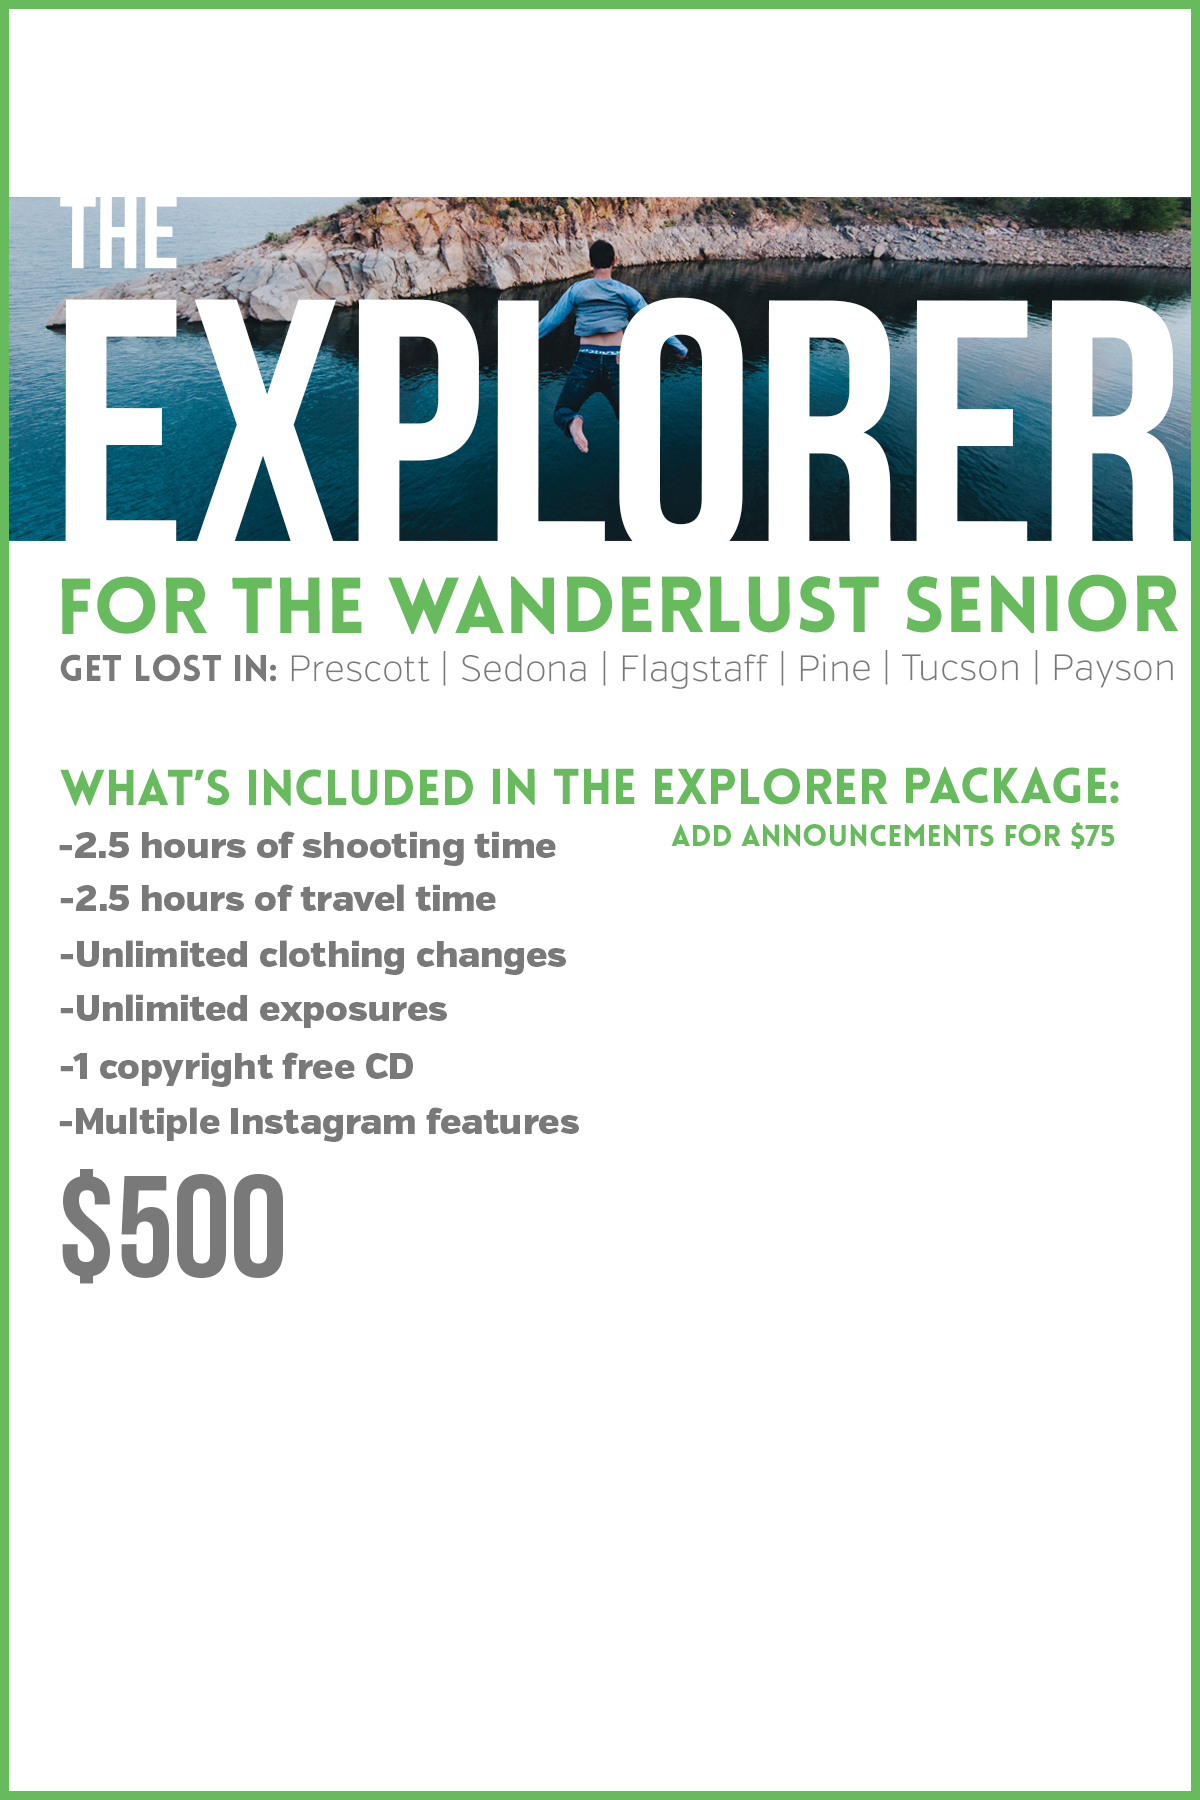 TheExplorerB_2014PricePoster